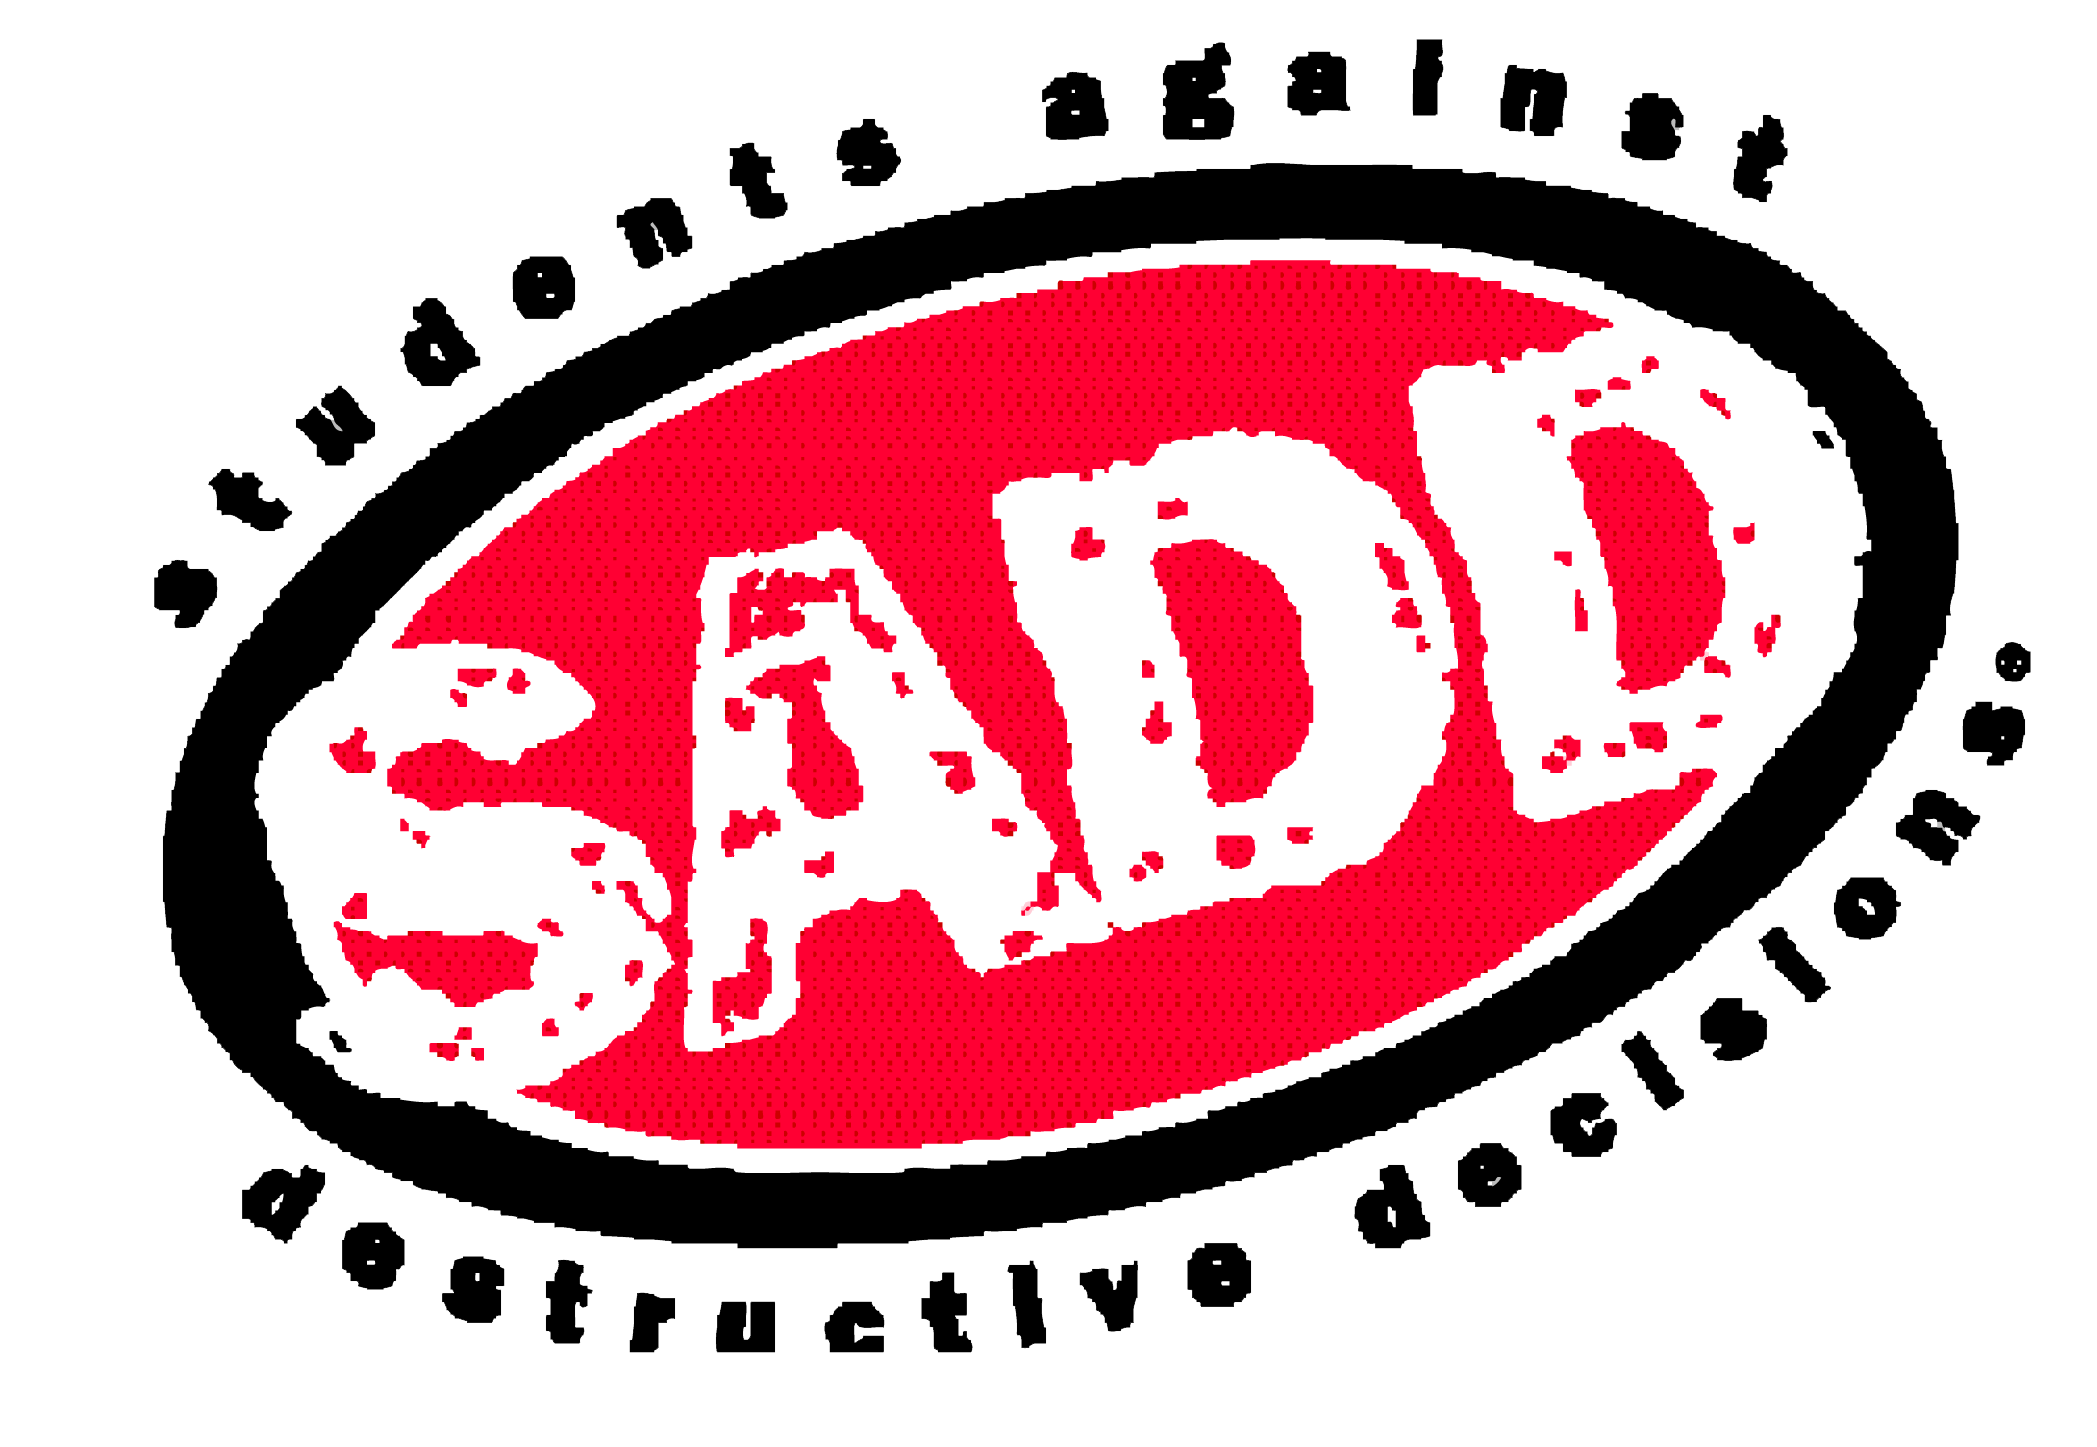 SADD color.jpg